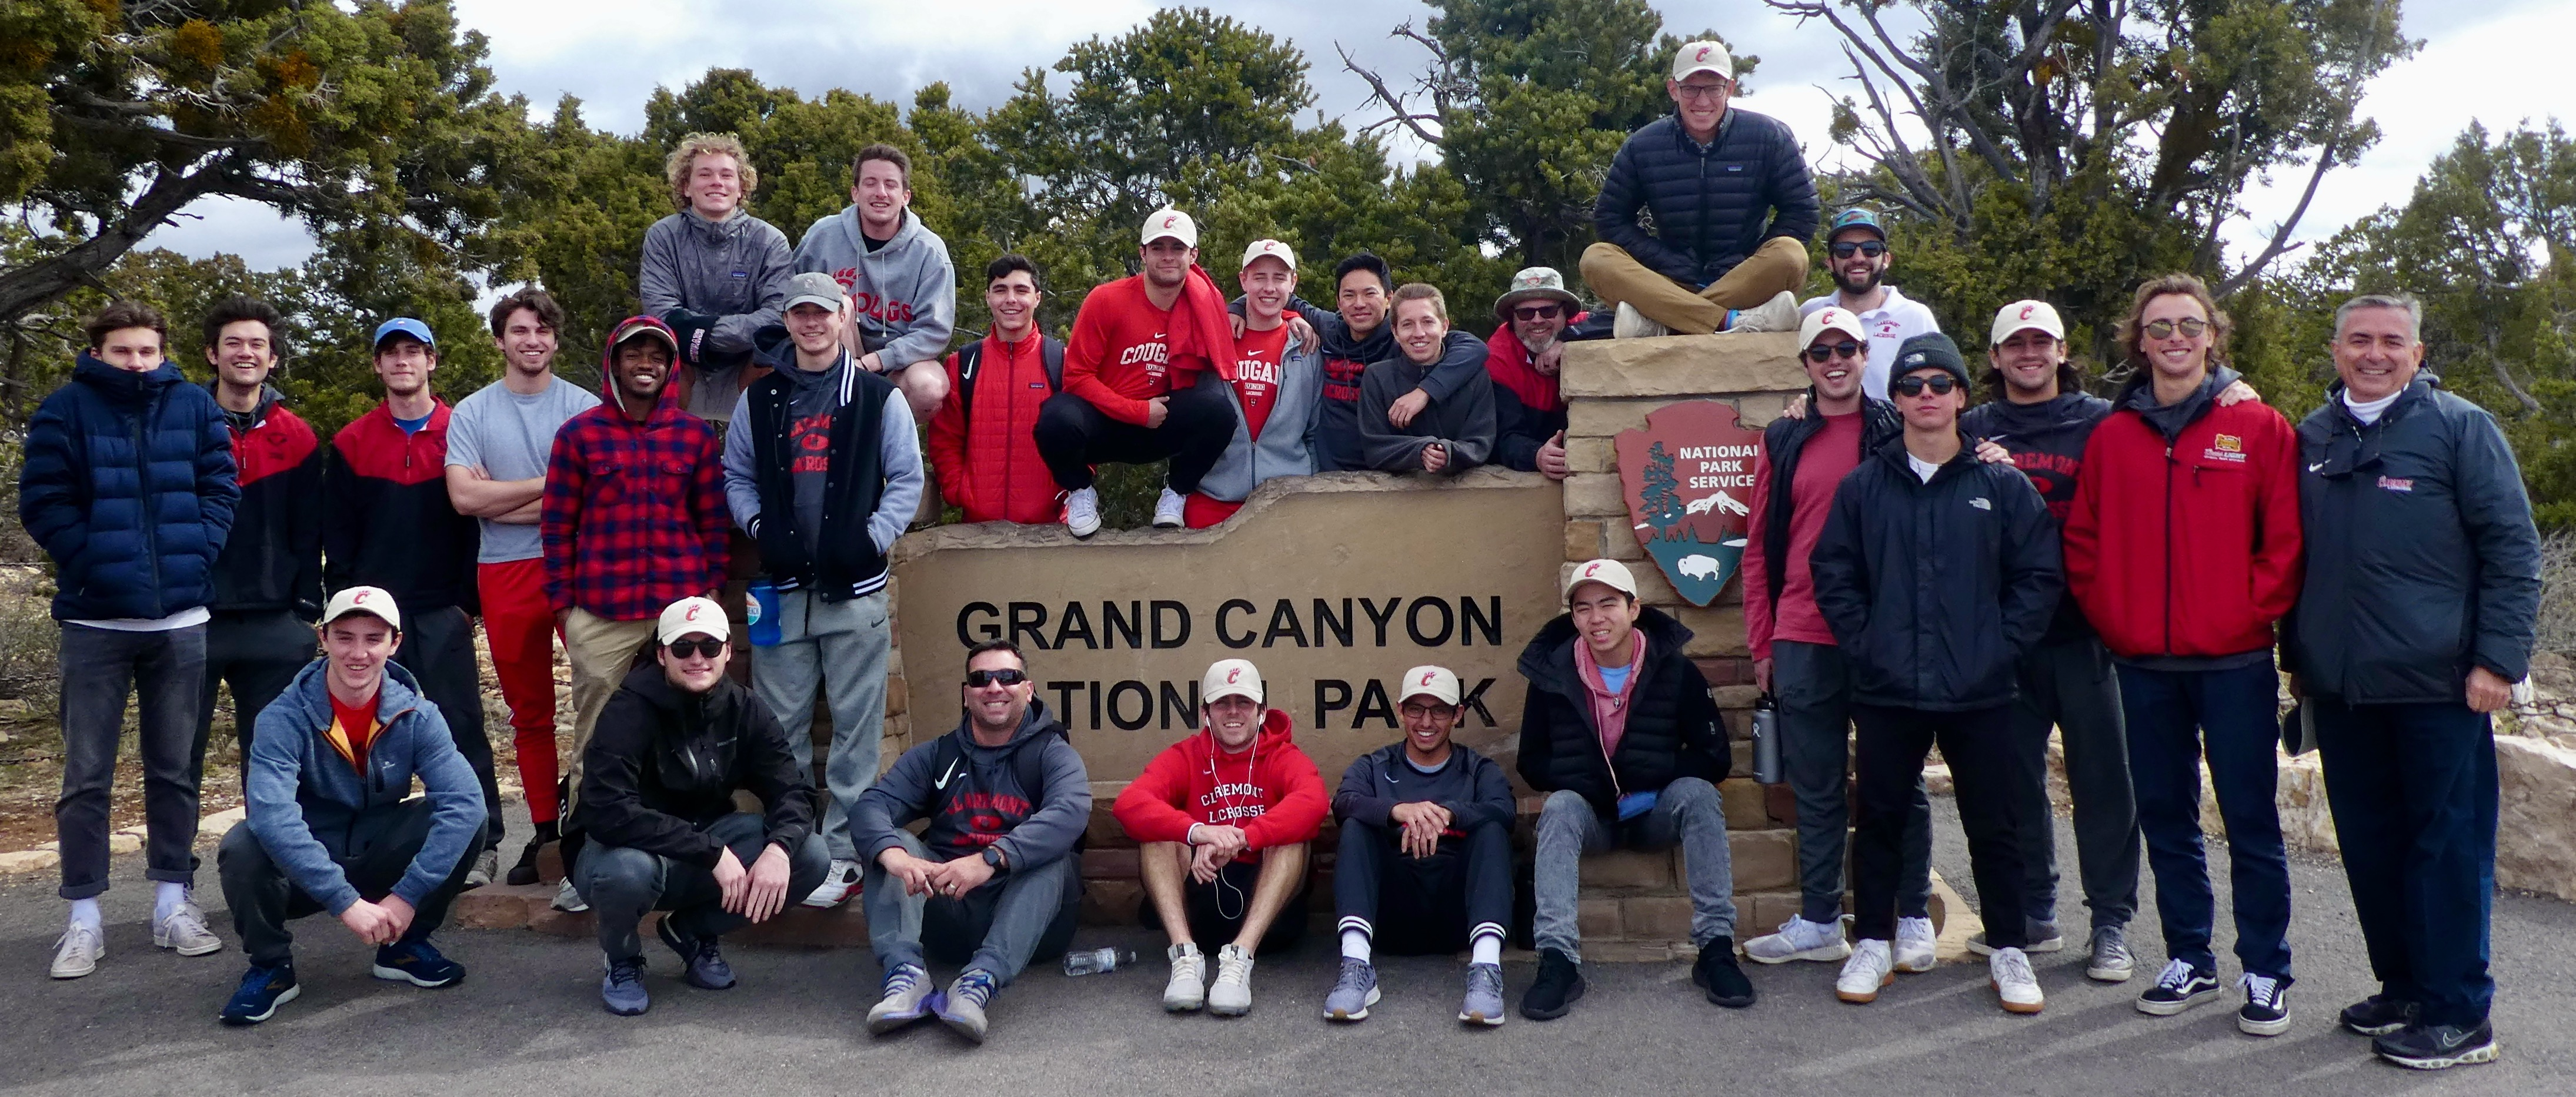 2020 Cougar team photo with Grand Canyon sign